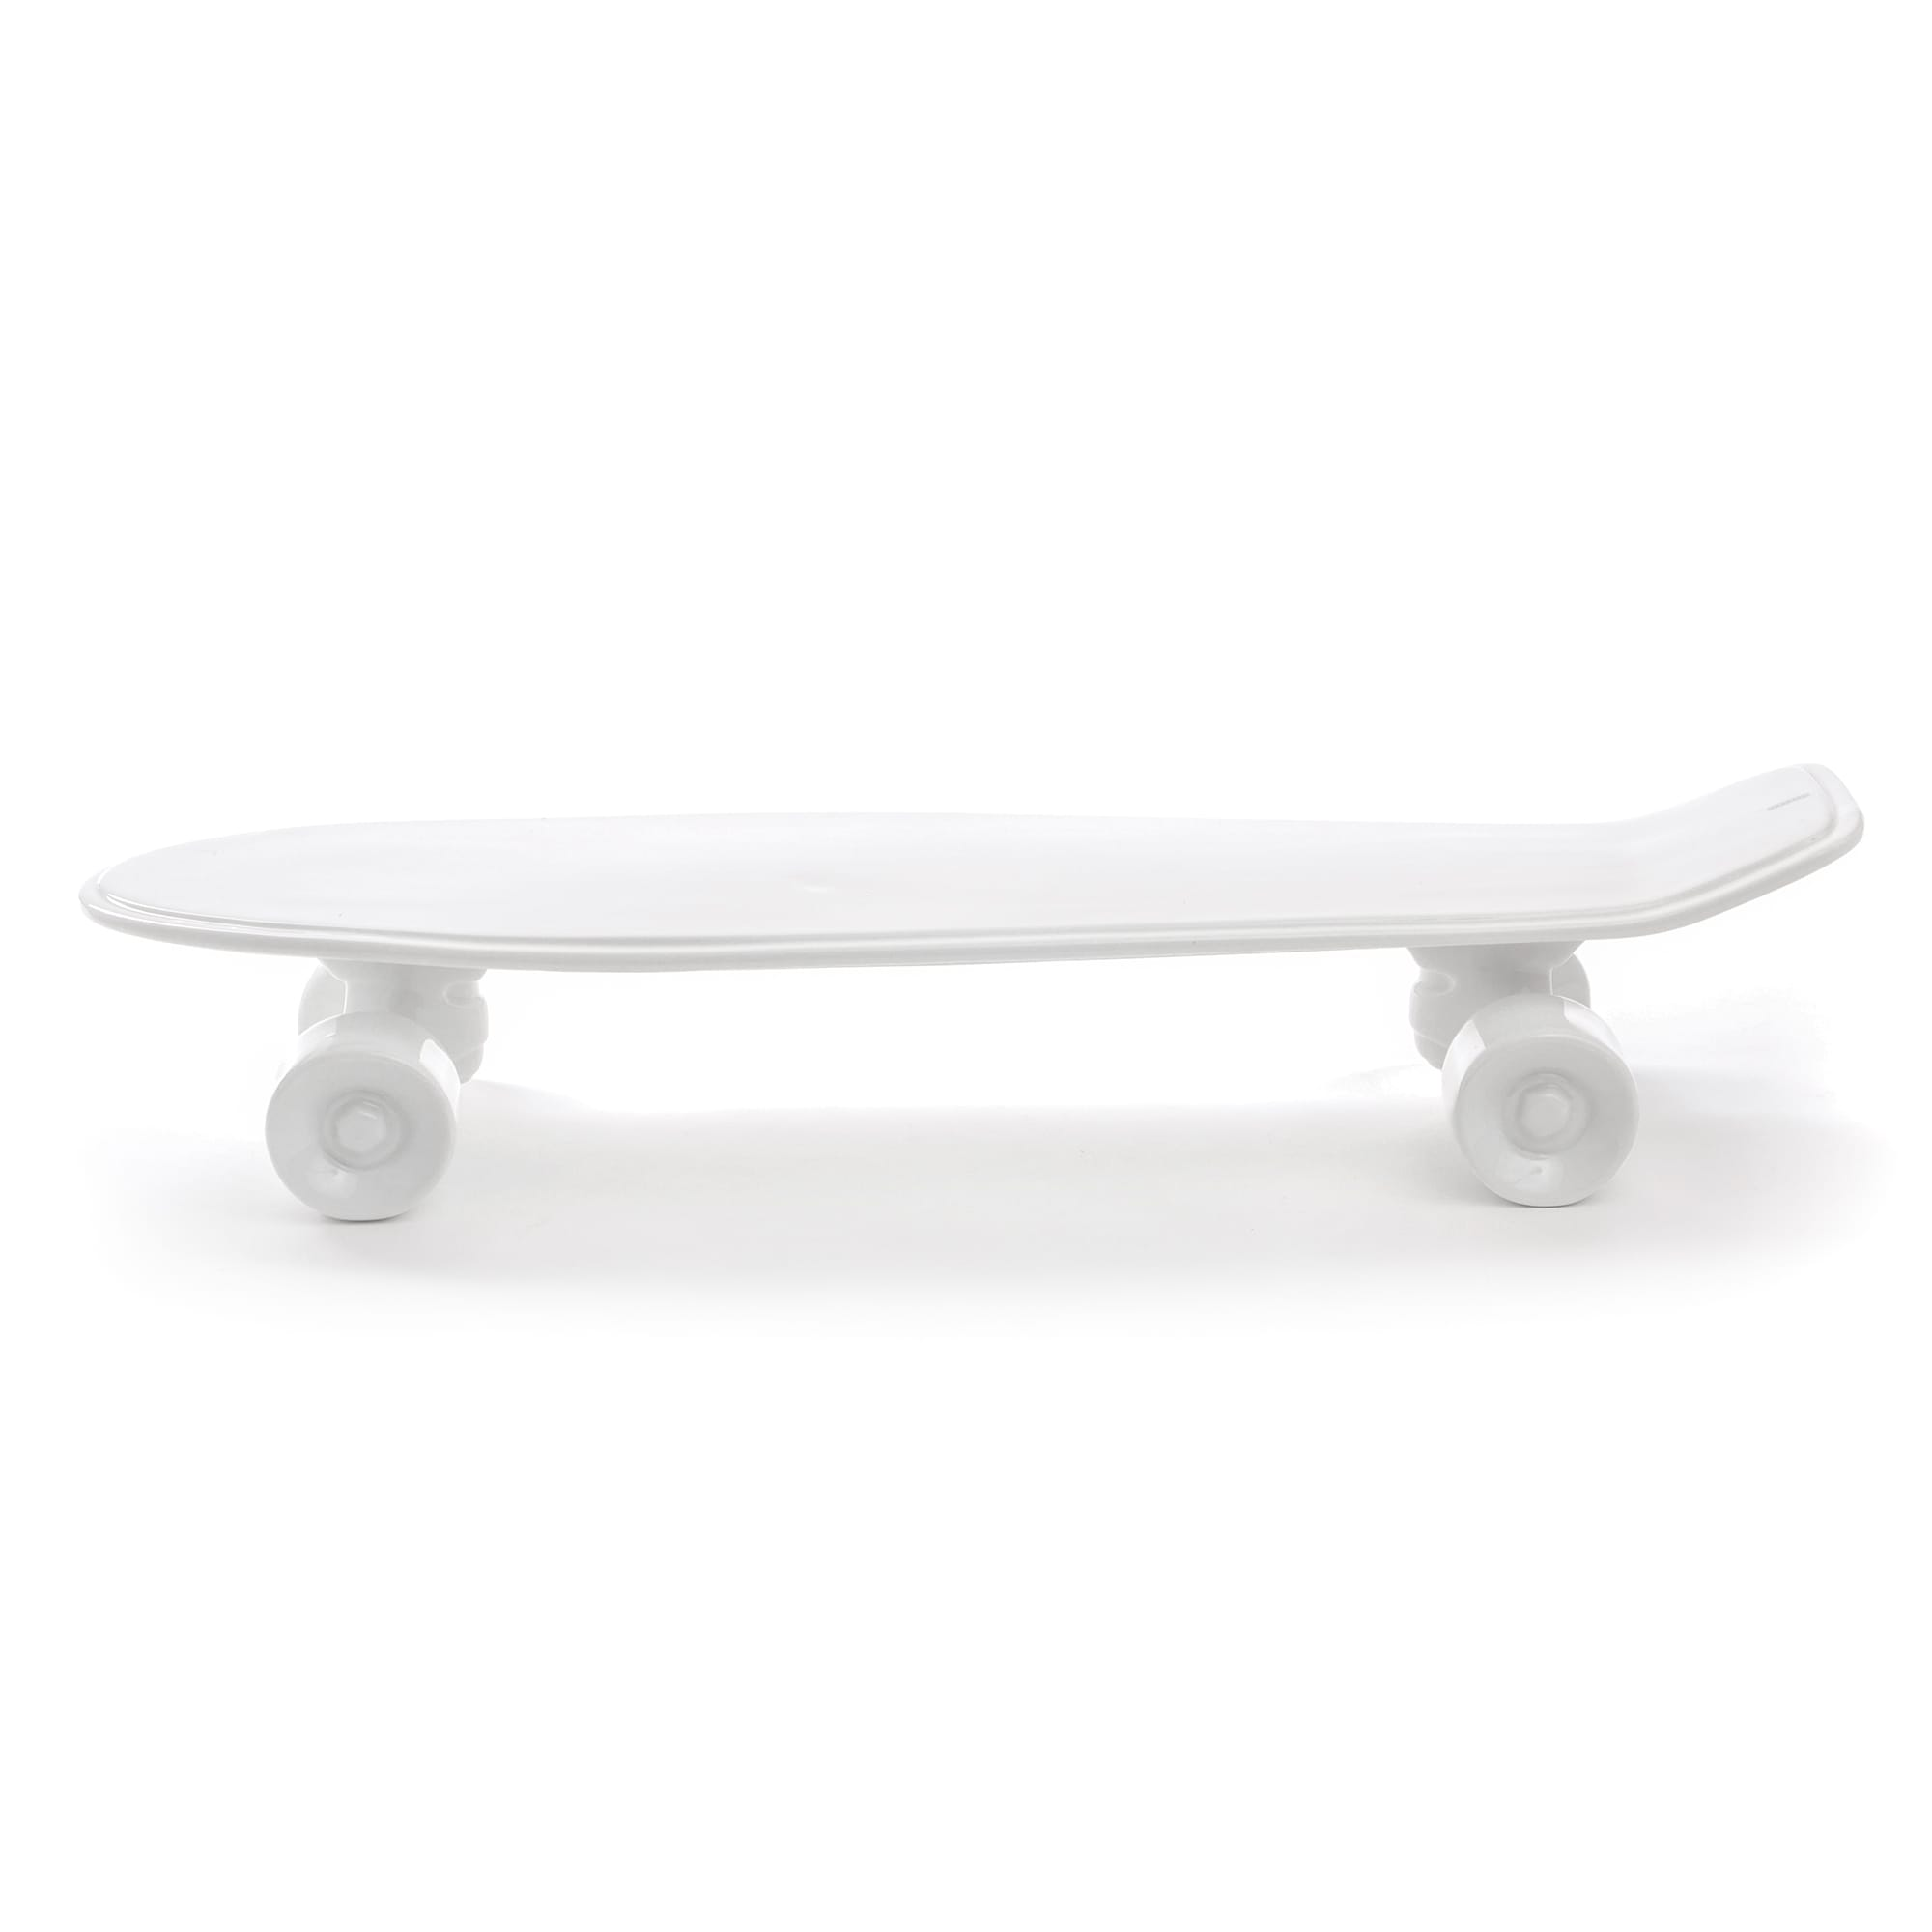 Accessory Seletti My Skateboard